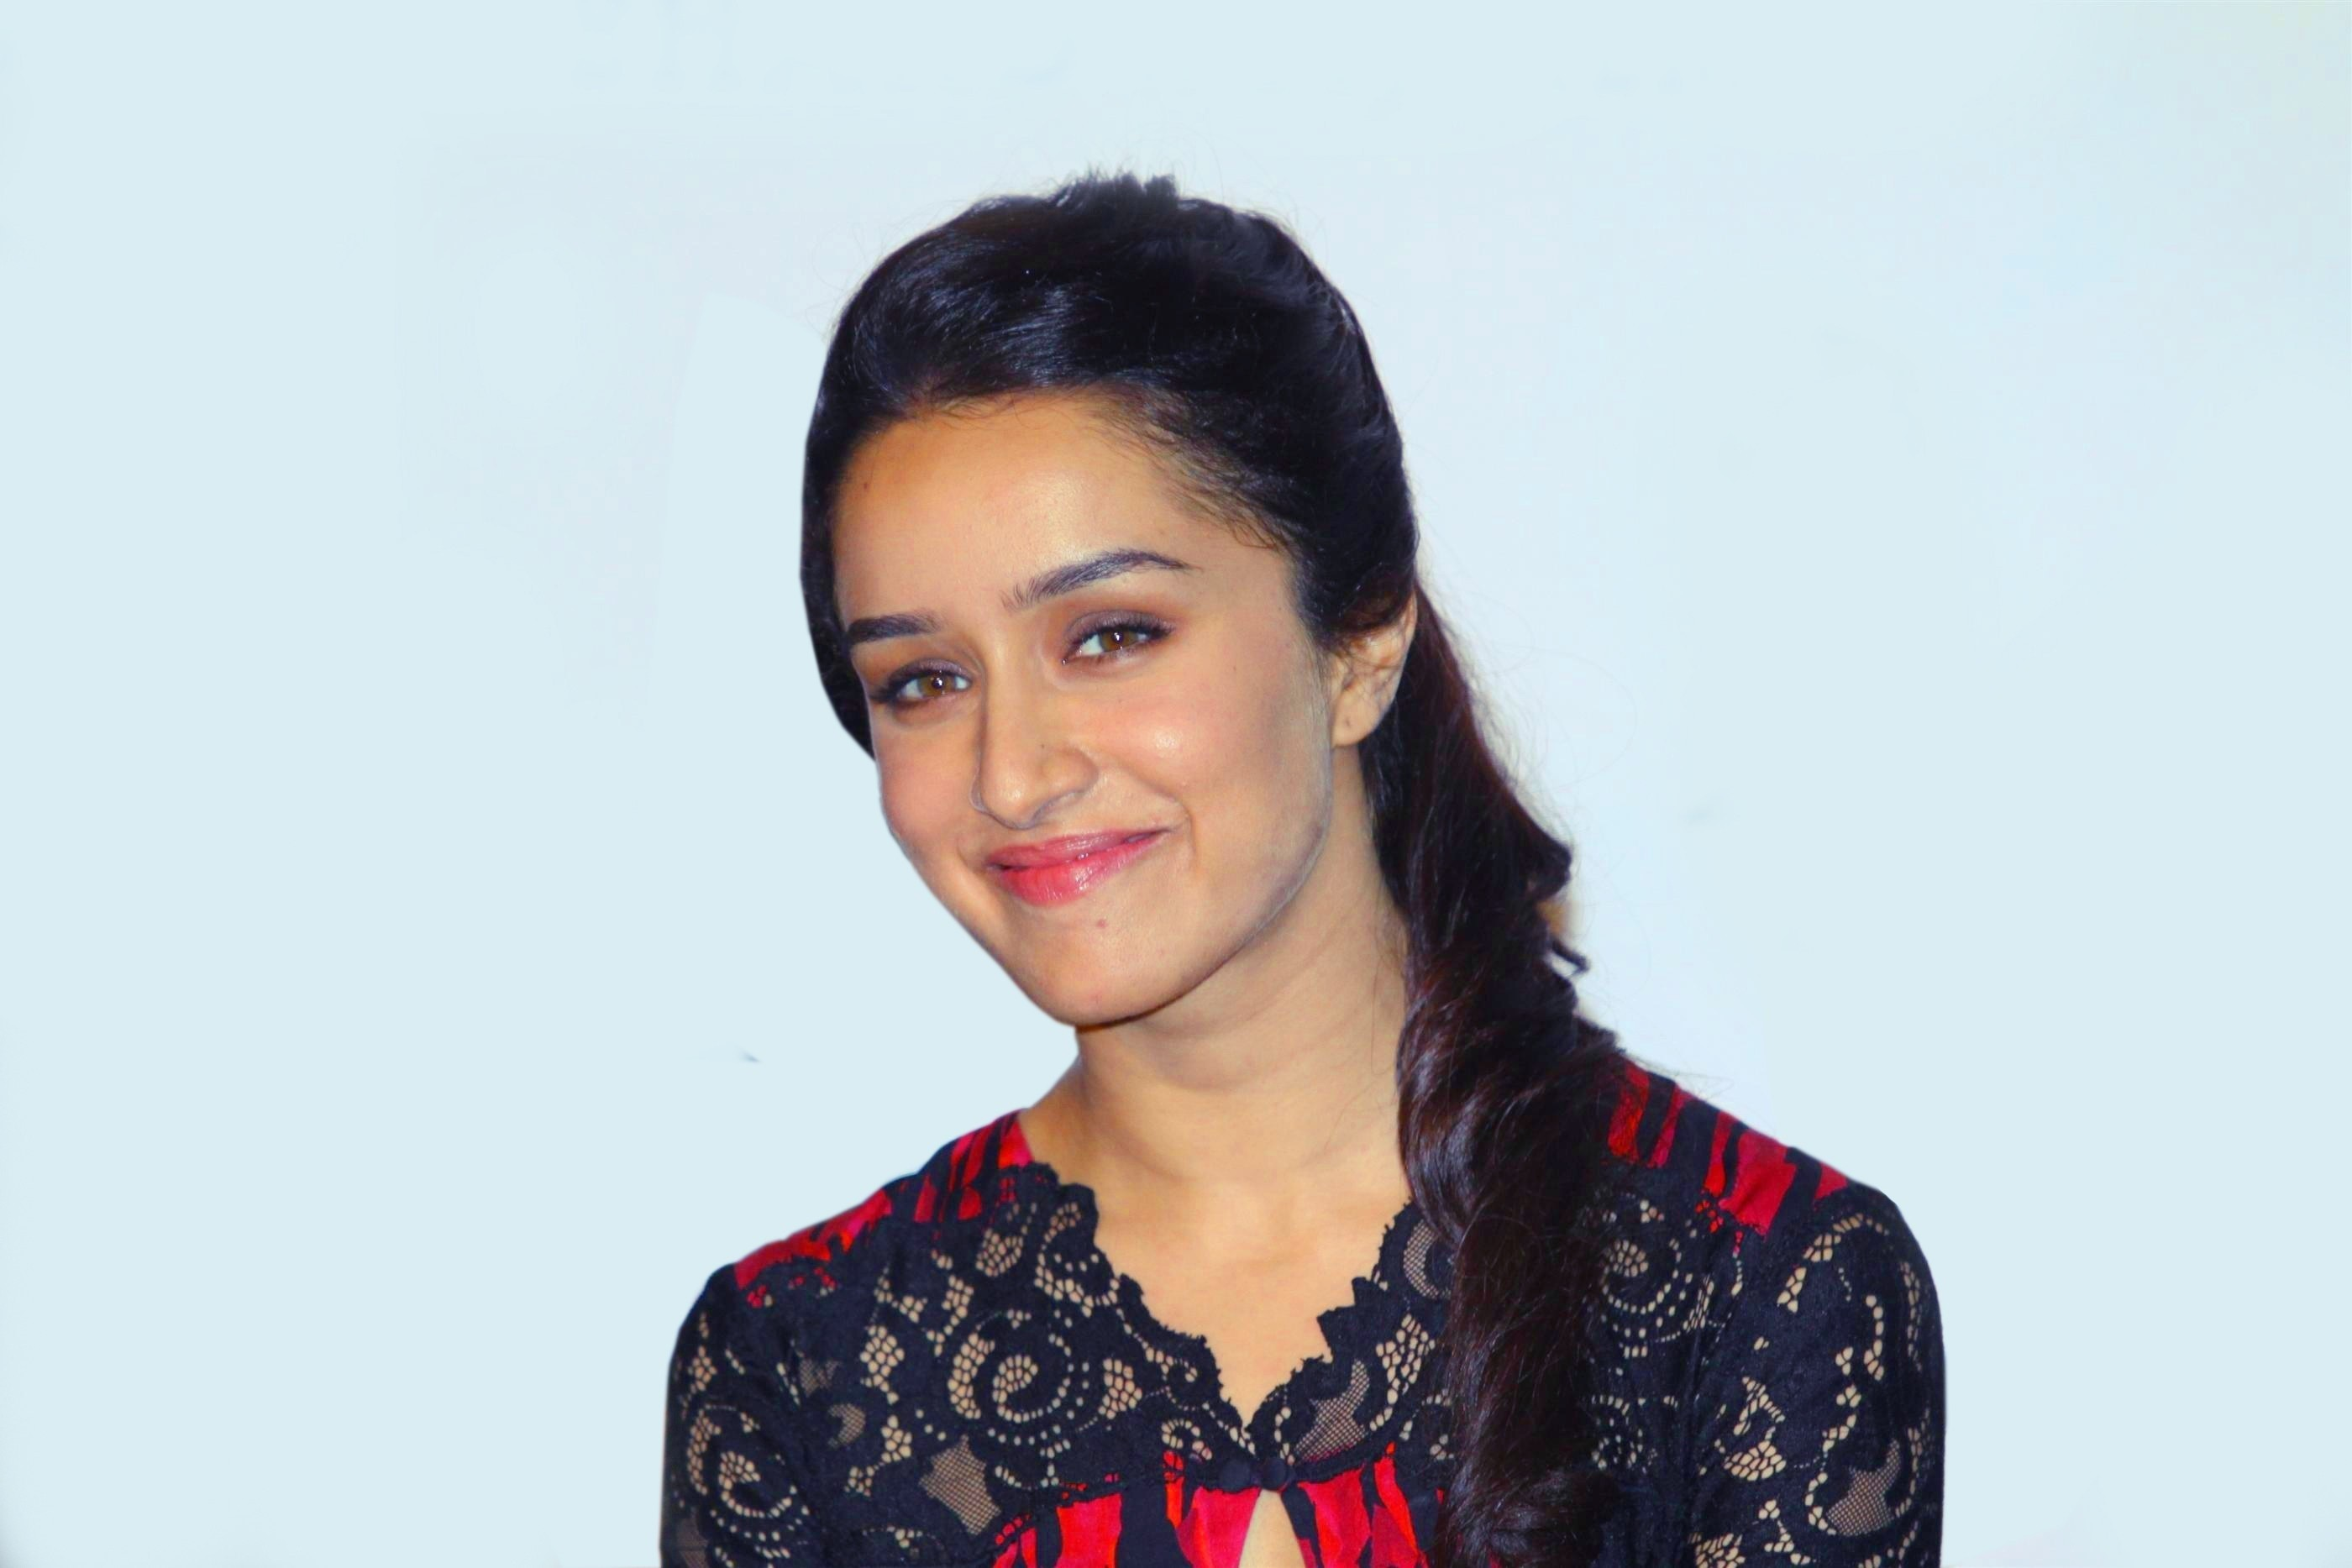 Cute Smile of Shraddha Kapoor Actress HD Wallpapers HD Wallpapers 2800x1867